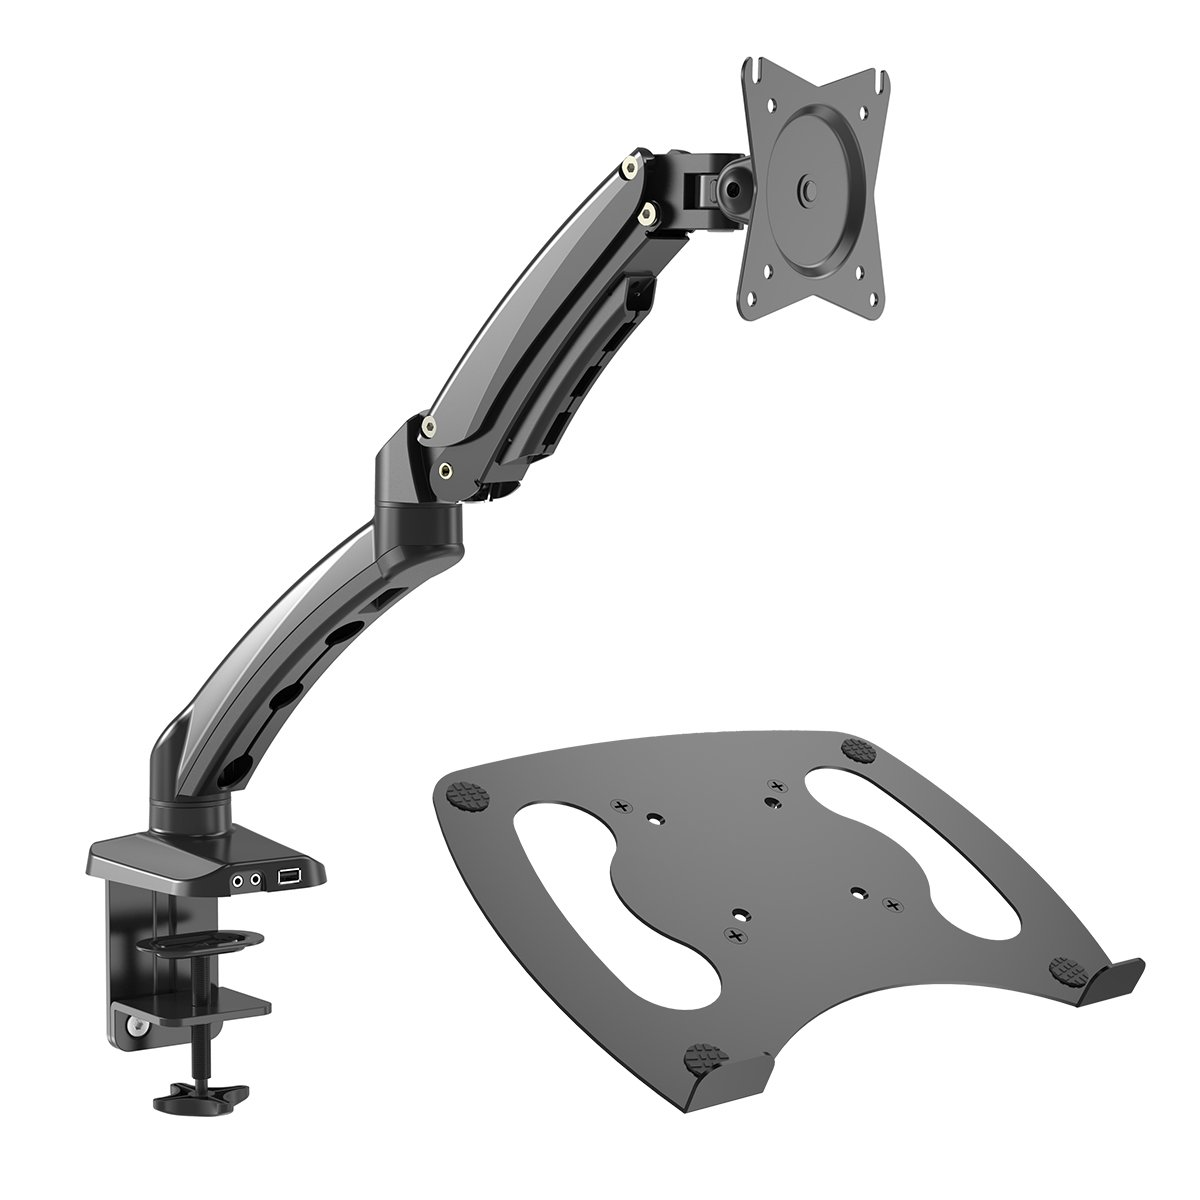 "Gibbon Mounts Monitor Desk Mount with Full Motion Gas Spring Riser VESA 75X75 and 100X100 or Free Removable Strong Steel Tray for Laptop 13"" to 17"""